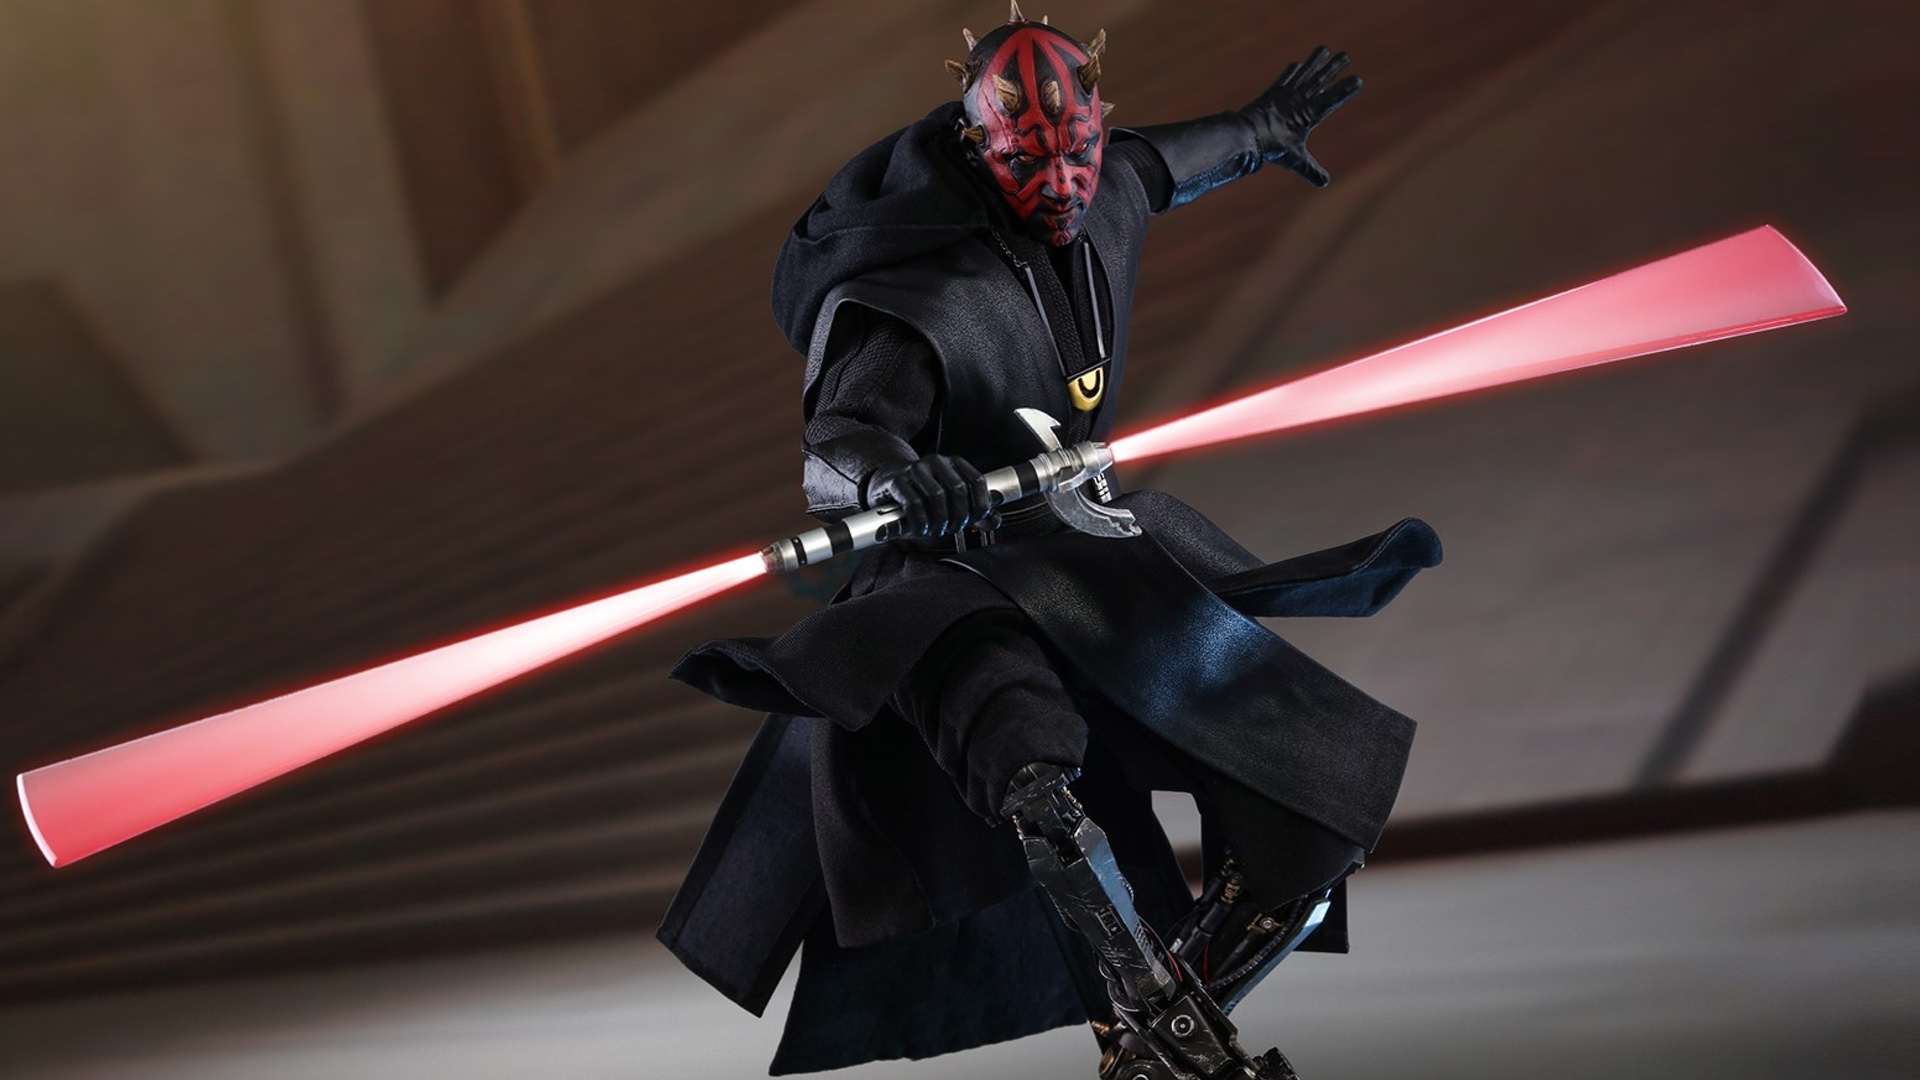 darth mauls robotic legs - HD 1920×1080